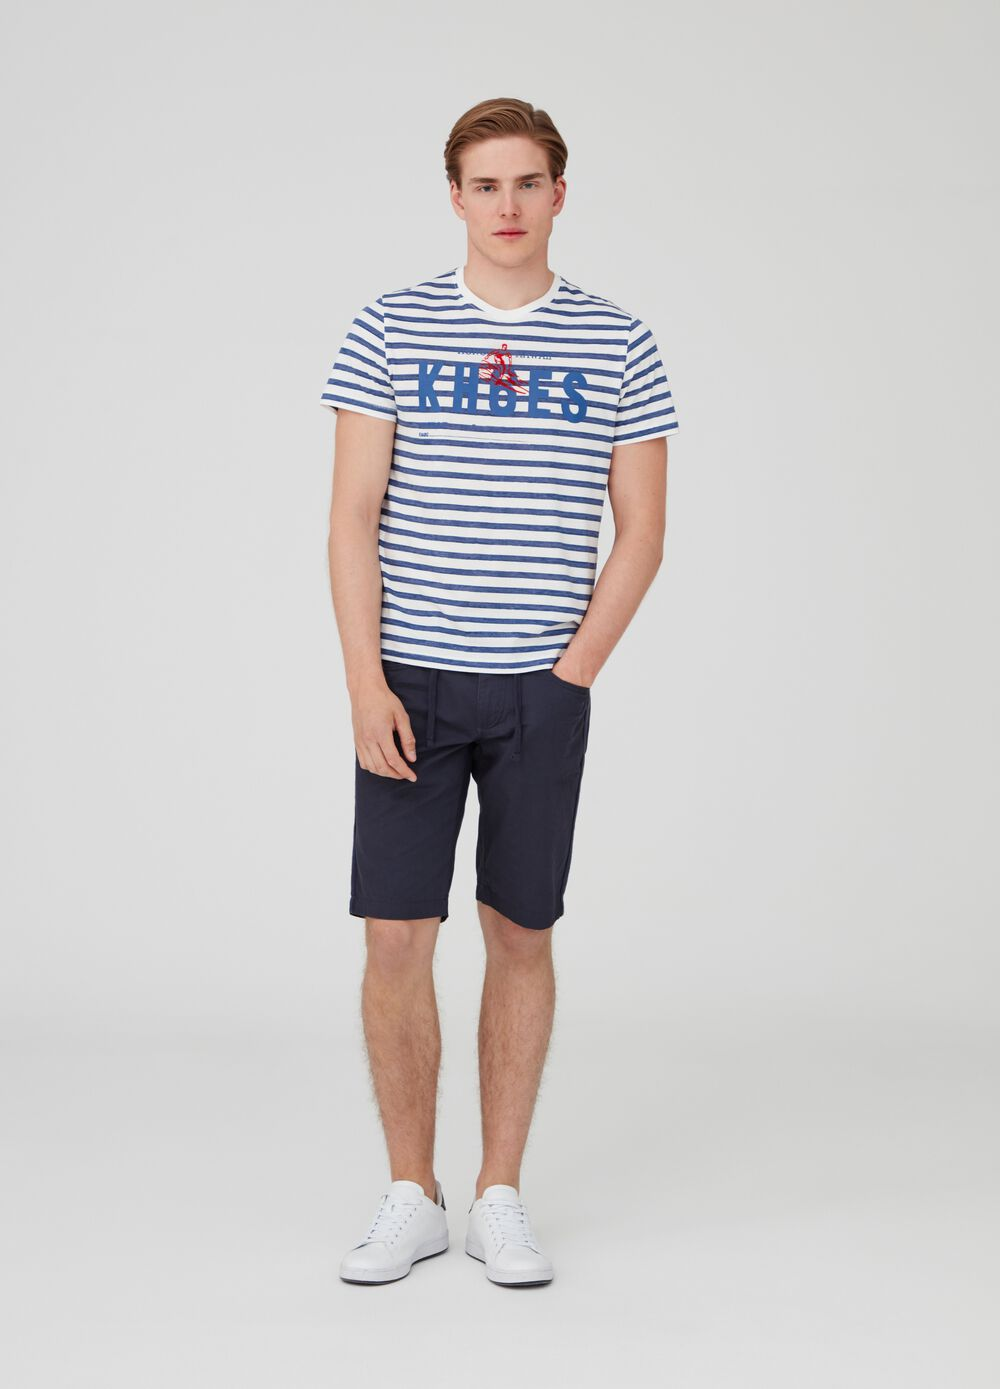 Bermuda shorts in 100% cotton with pockets